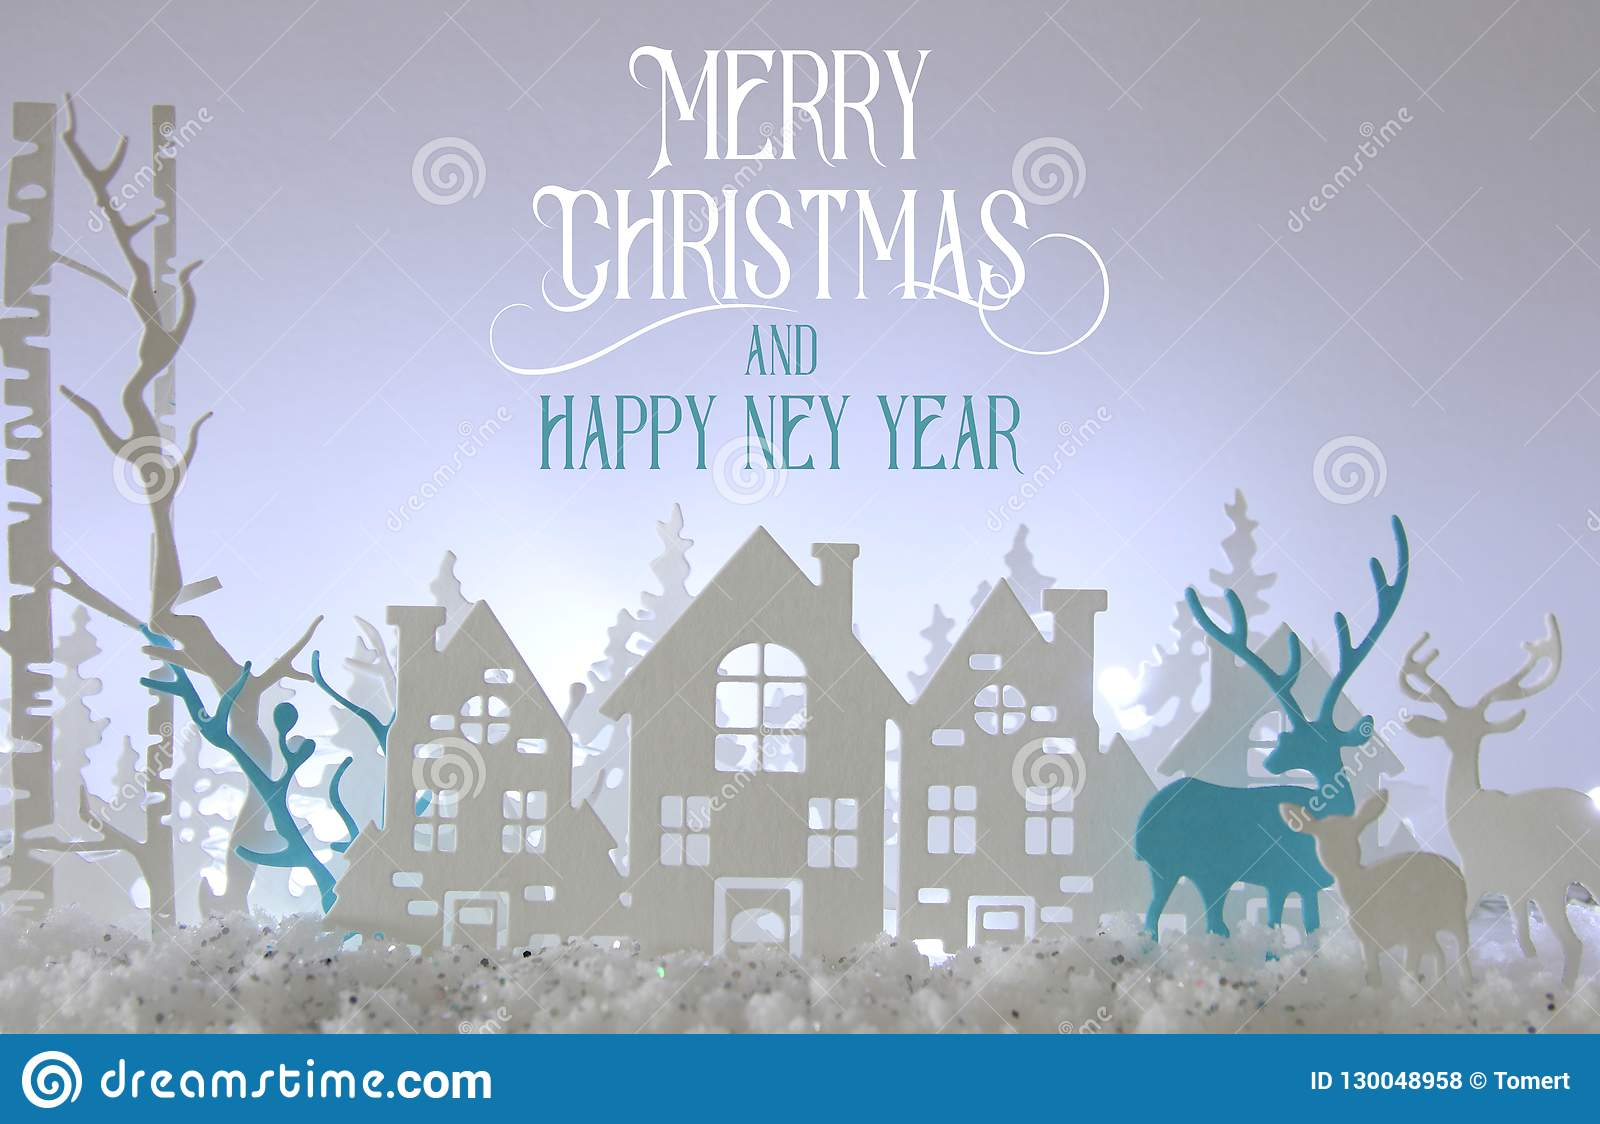 Magical Christmas paper cut winter background landscape with houses, trees, deer and snow in front of white lights background.